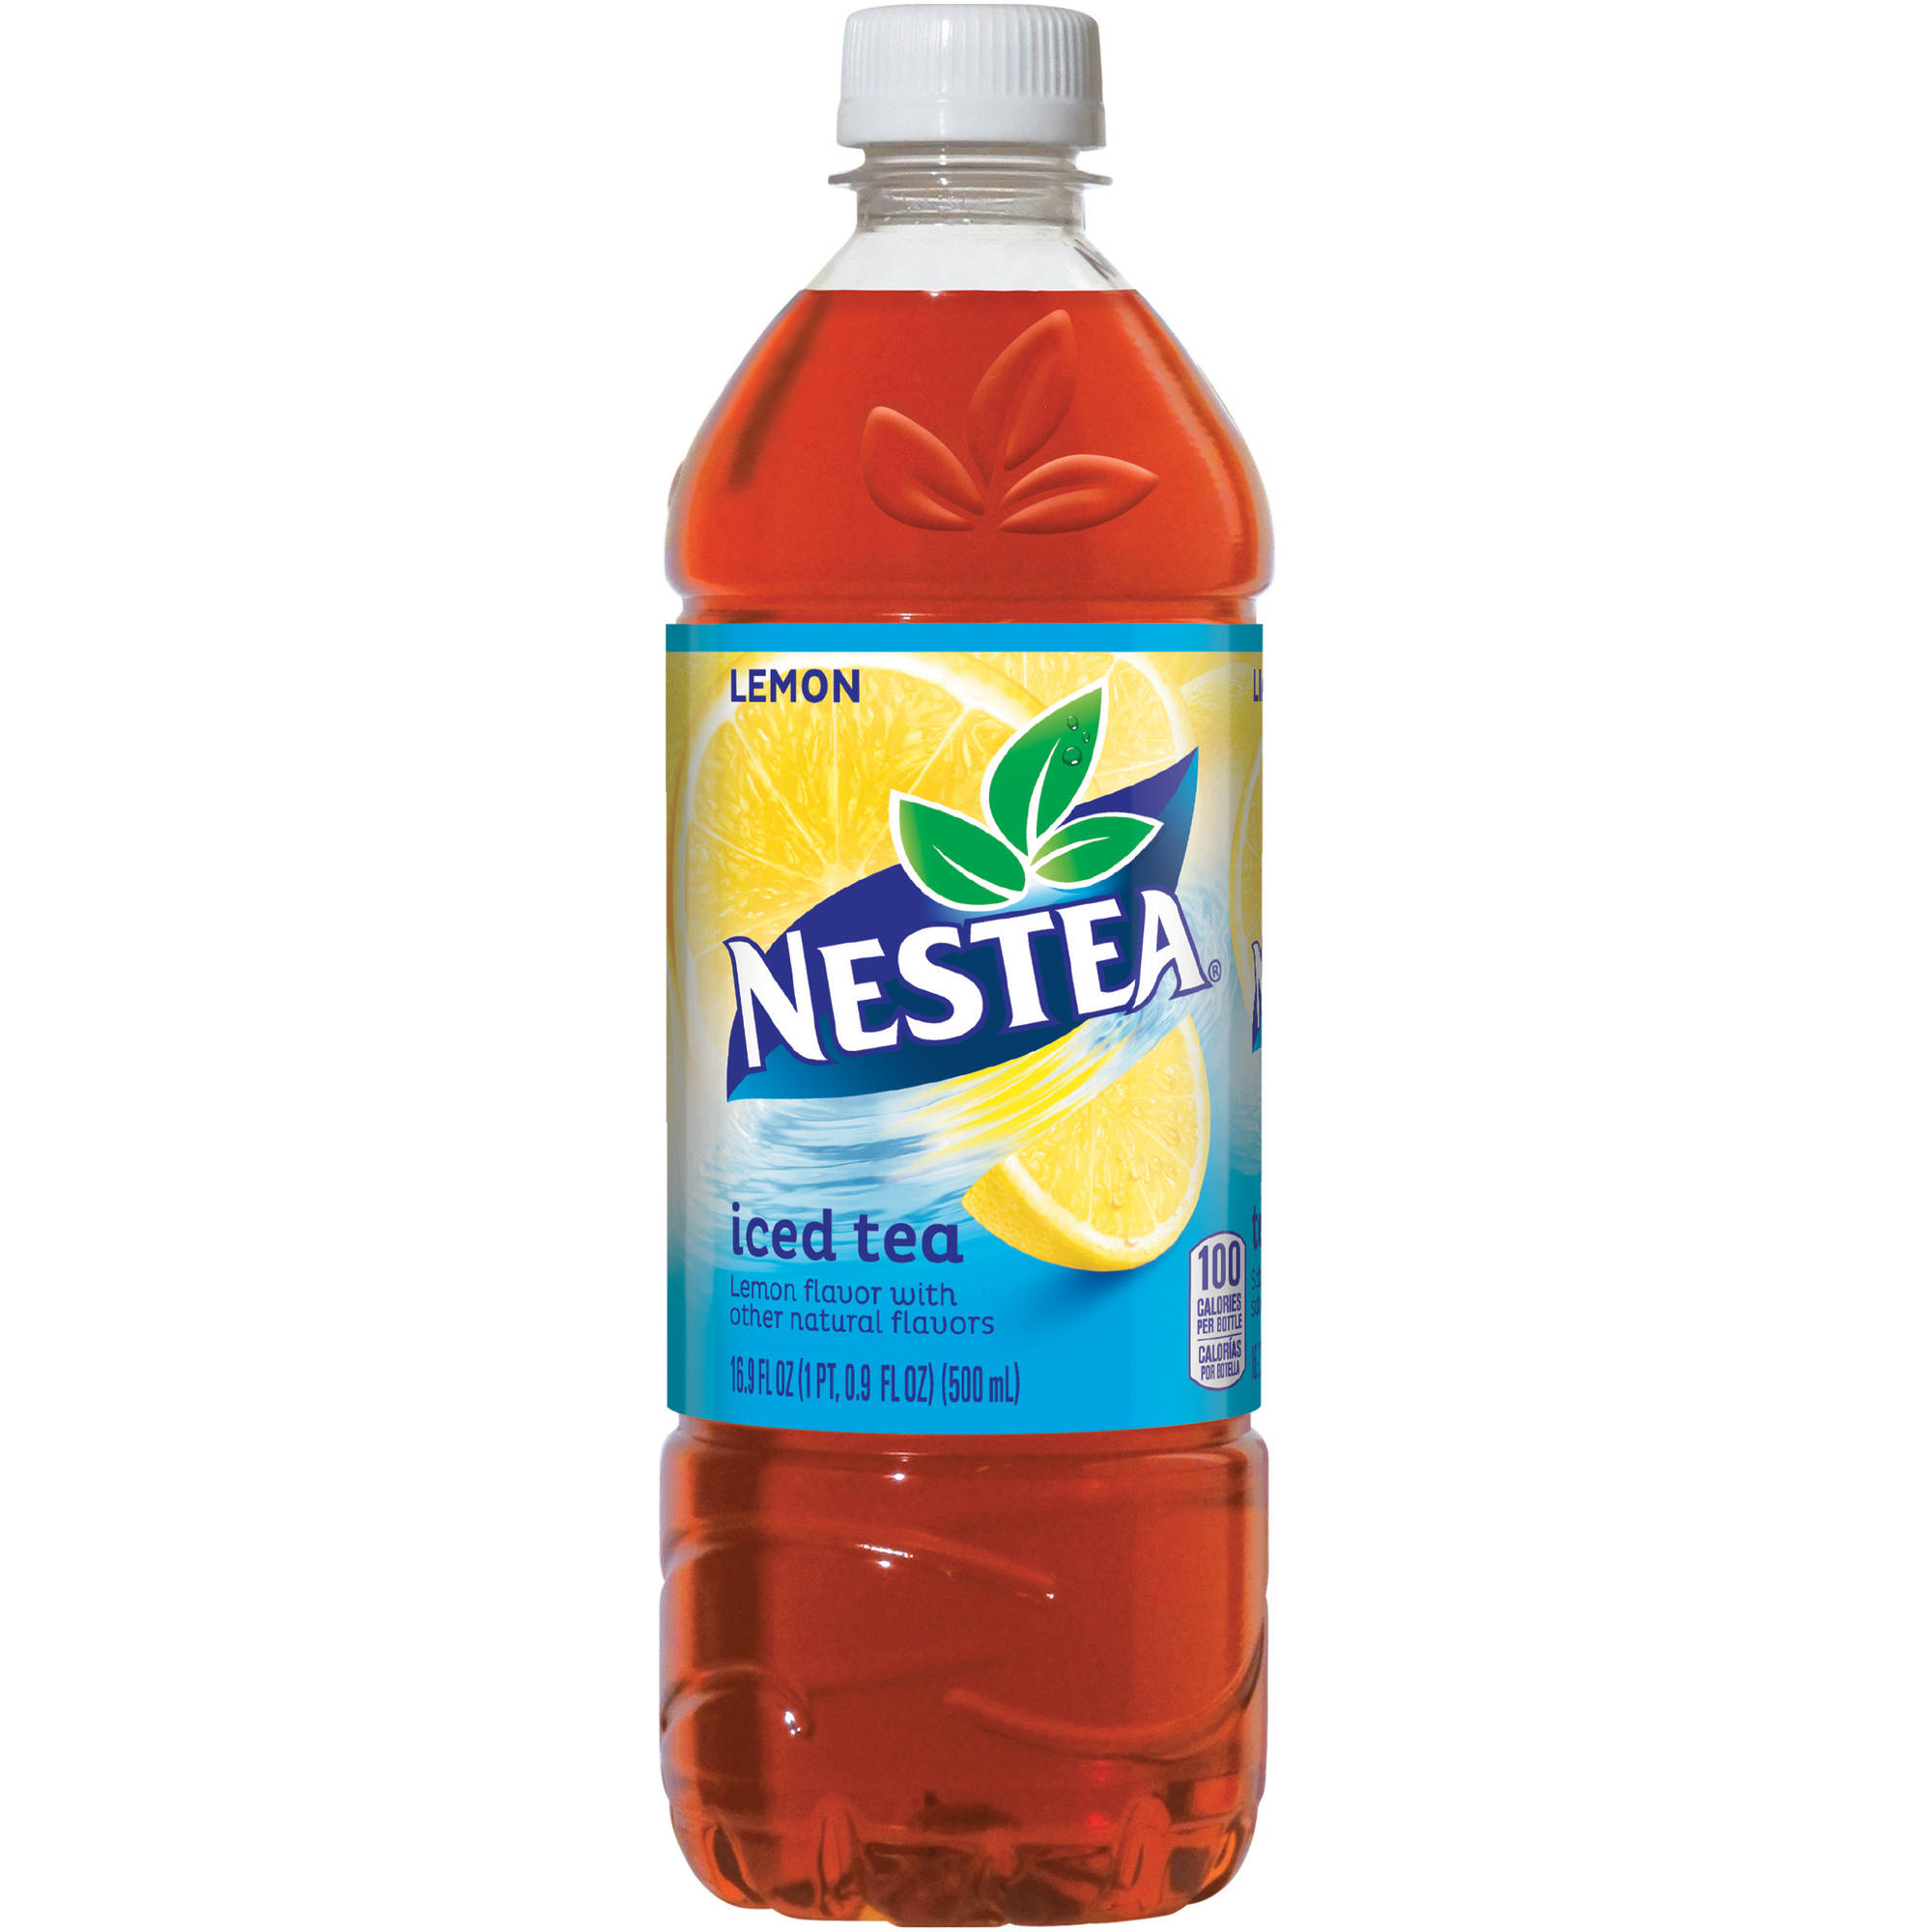 Nestea Lemon Iced Tea, 16.9 fl oz, 24 pack